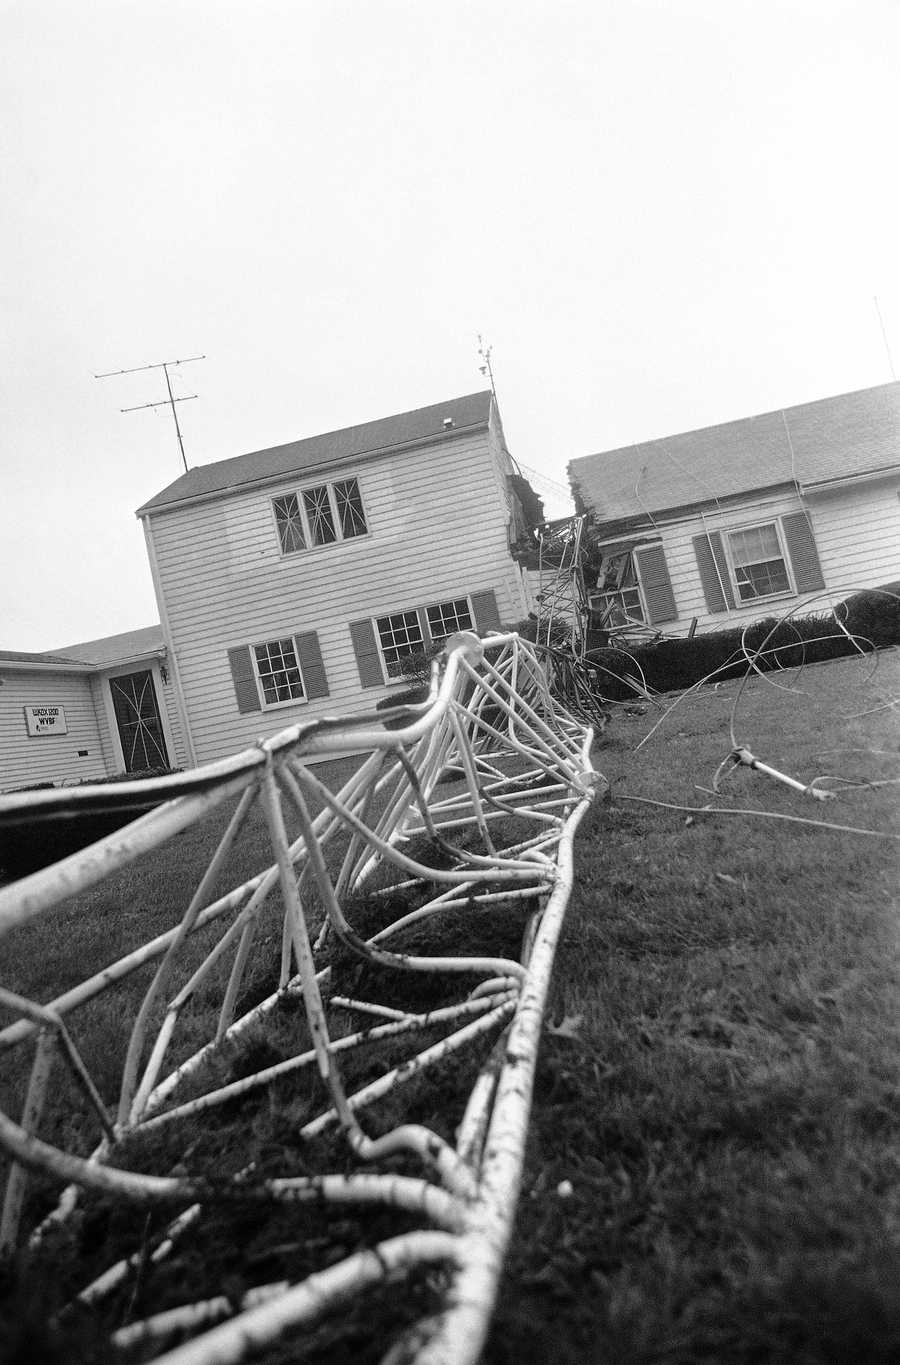 The antenna tower for radio stations WKOK-AM and WVBF-FM lies collapsed over the station facility building on Friday, Sept. 27, 1985 in Framingham, Massachusetts, after it was felled by high winds from Hurricane Gloria.